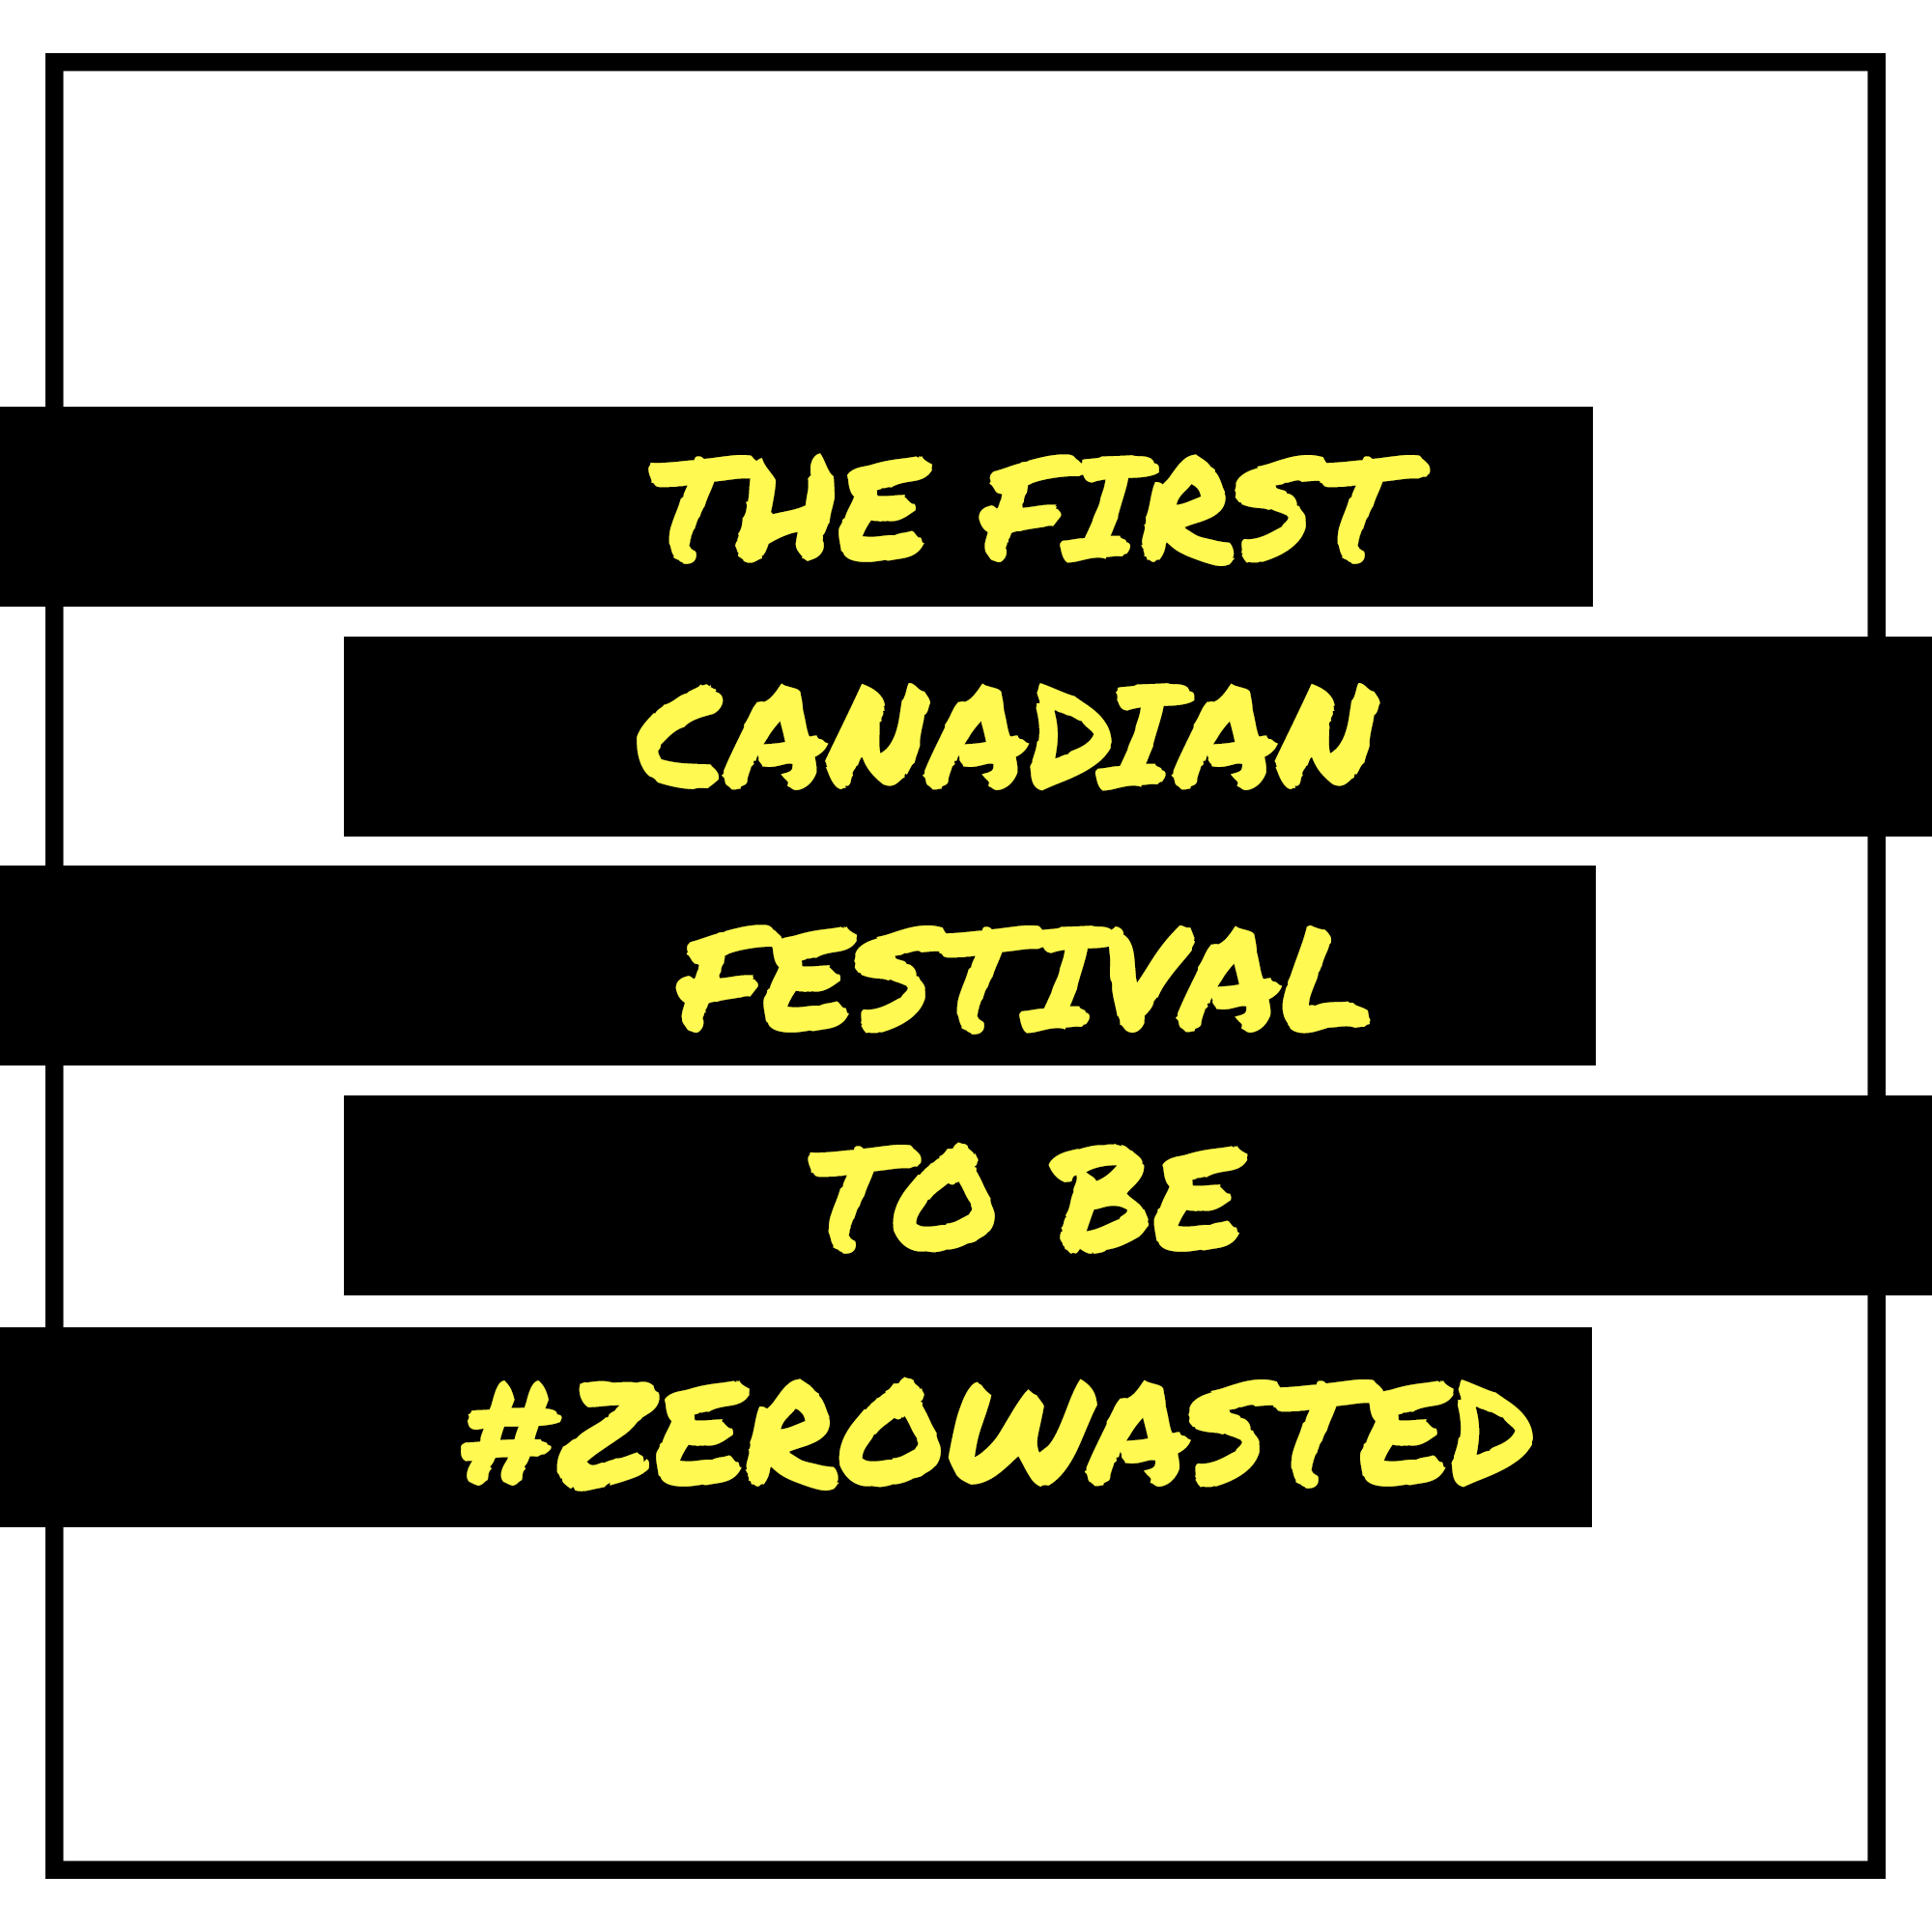 - This year we are thrilled to have The Sustainable Duo helping us zero-waste this festival to ensure that we're making the smallest footprint possible.This is the 1st Canadian festival to be #ZEROWASTED!